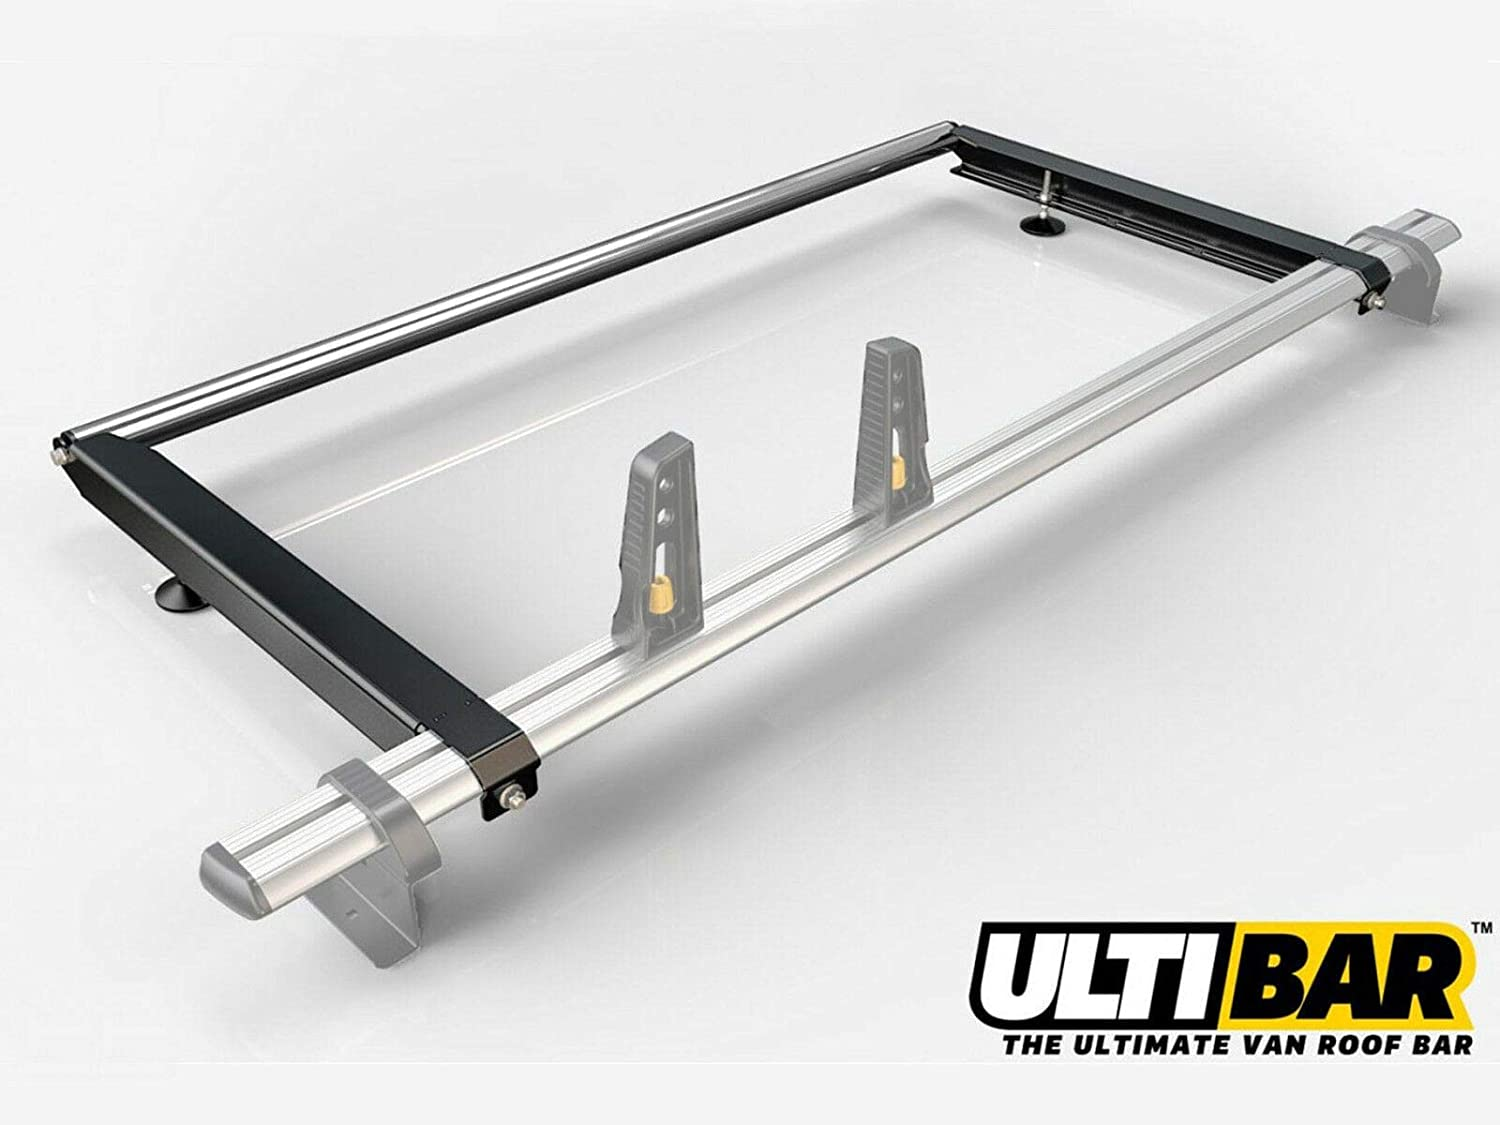 Van Guard ULTI Bar 2 Roof Bars and Rear Ladder Roller Kit for VW Crafter 06-17 MWB, Low Roof